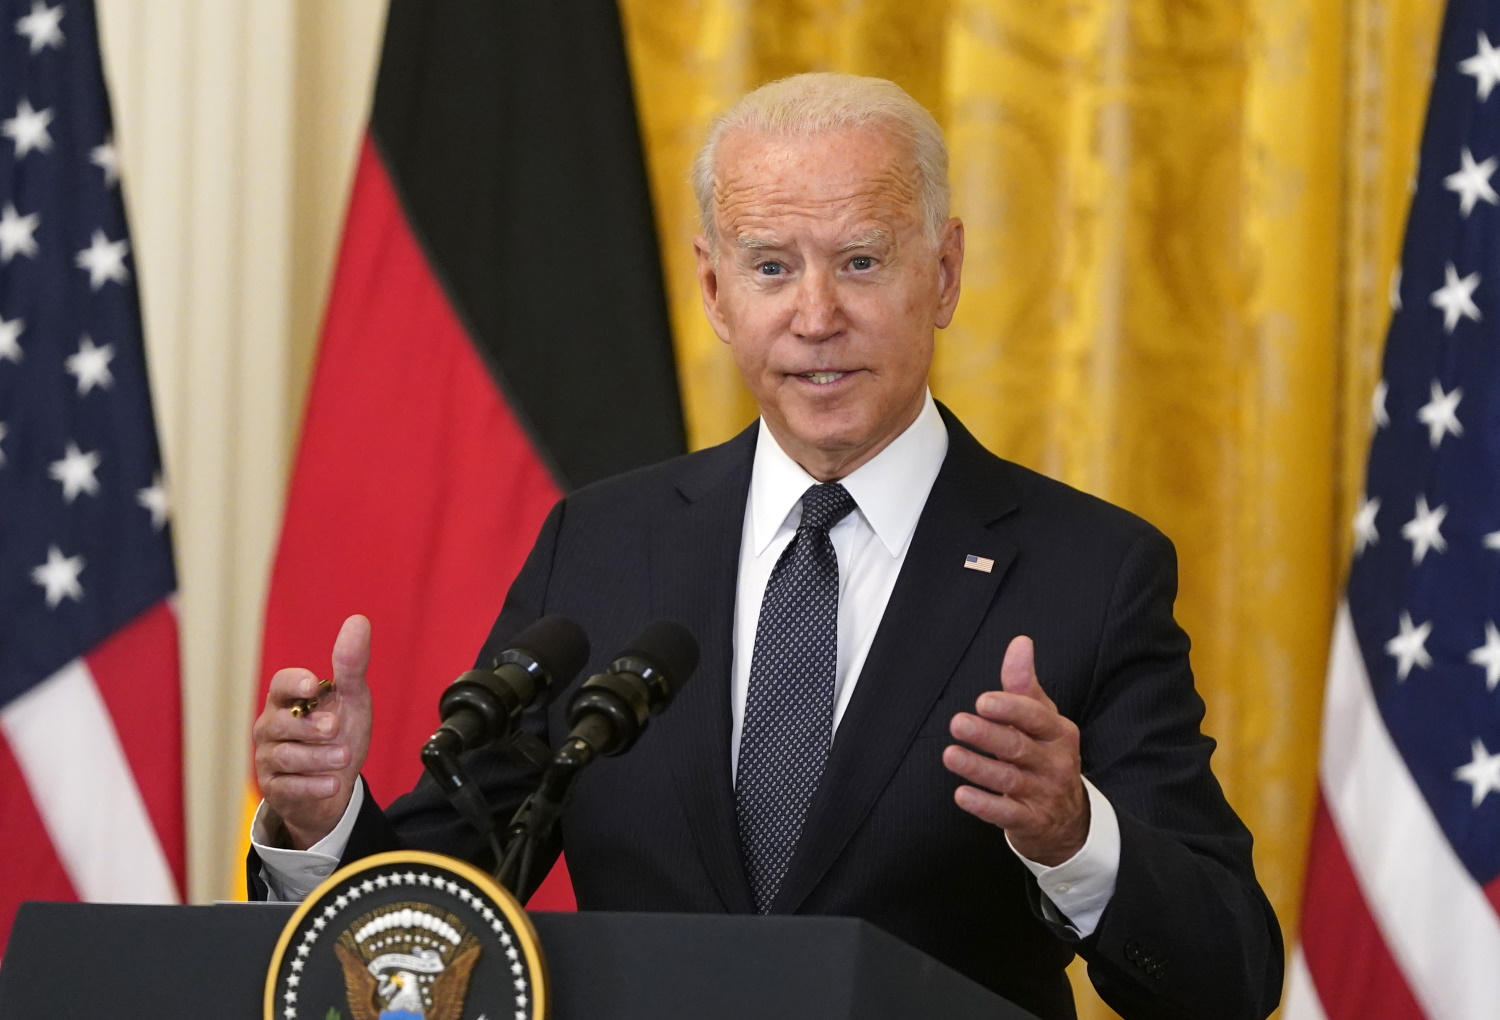 Biden Accuses Chinese State Actors of Ransomware, Cryptojacking Attacks